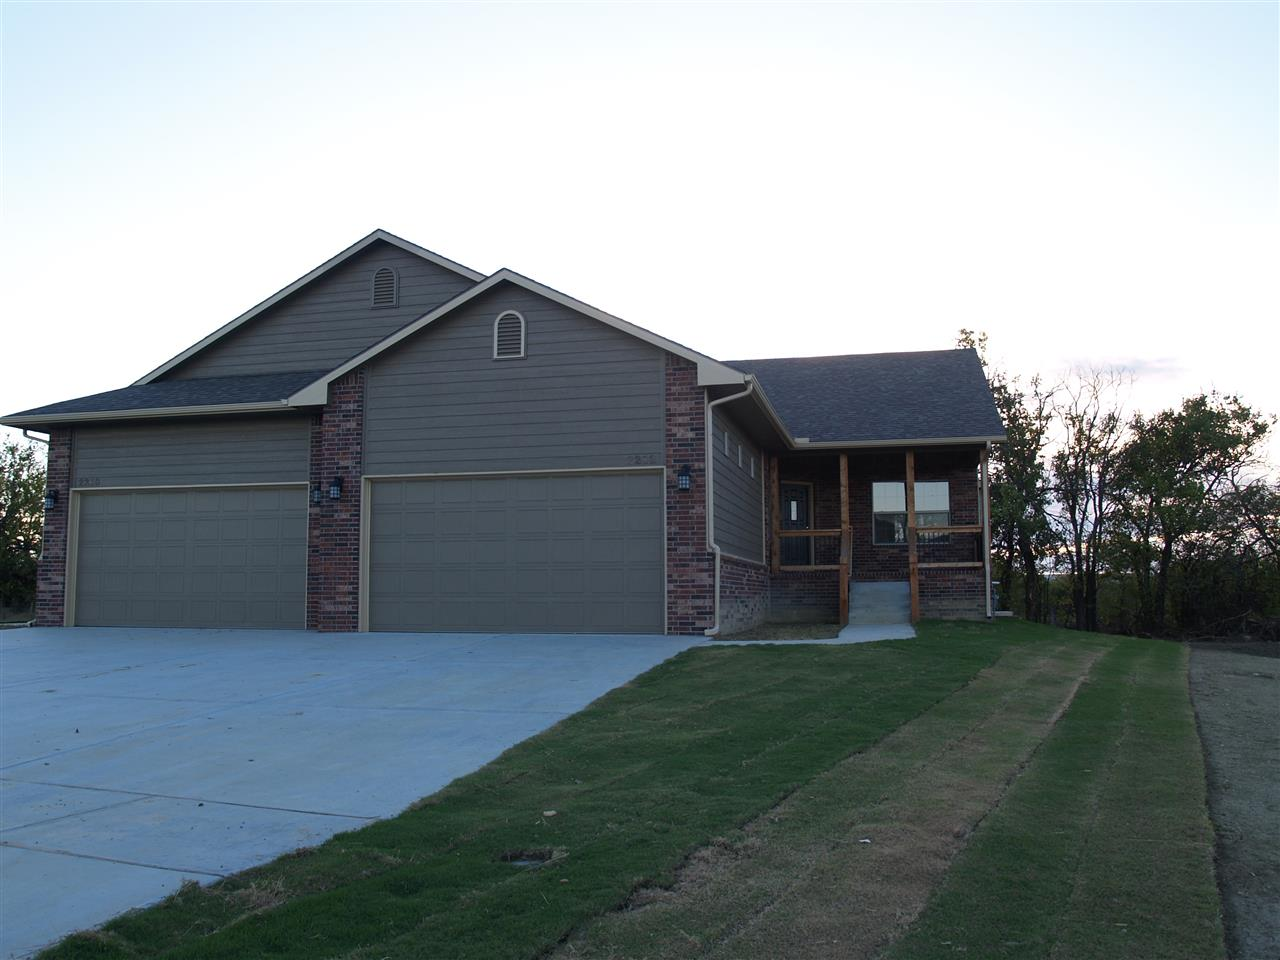 2210 E Quivira Circle, Kechi, KS 67226